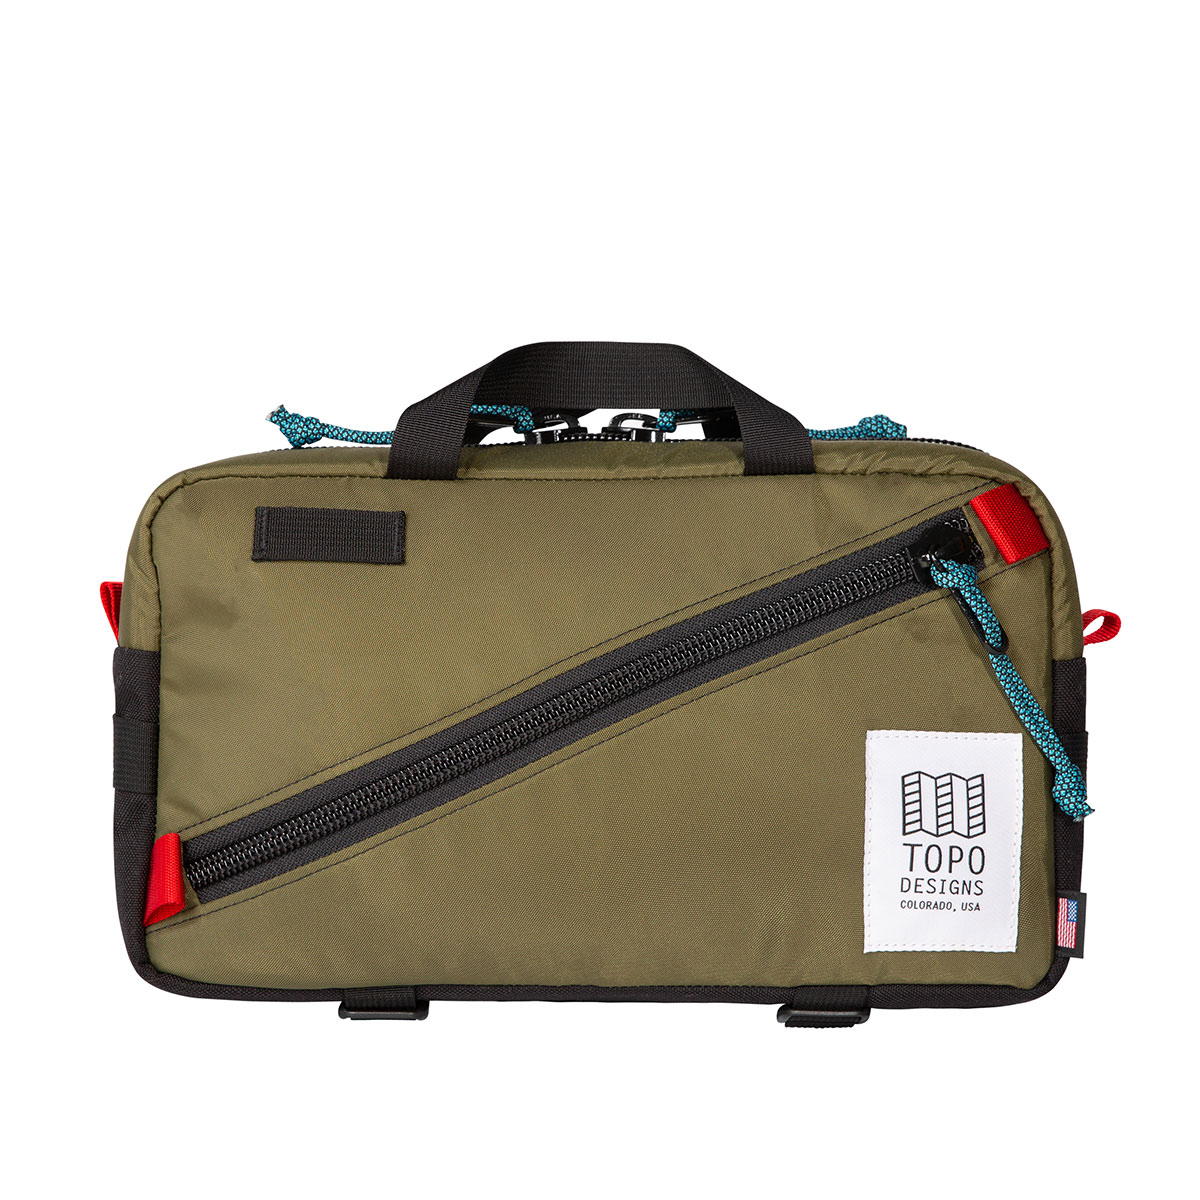 Topo Designs Quick Pack Olive/Black, a well-built, secure bag for travel